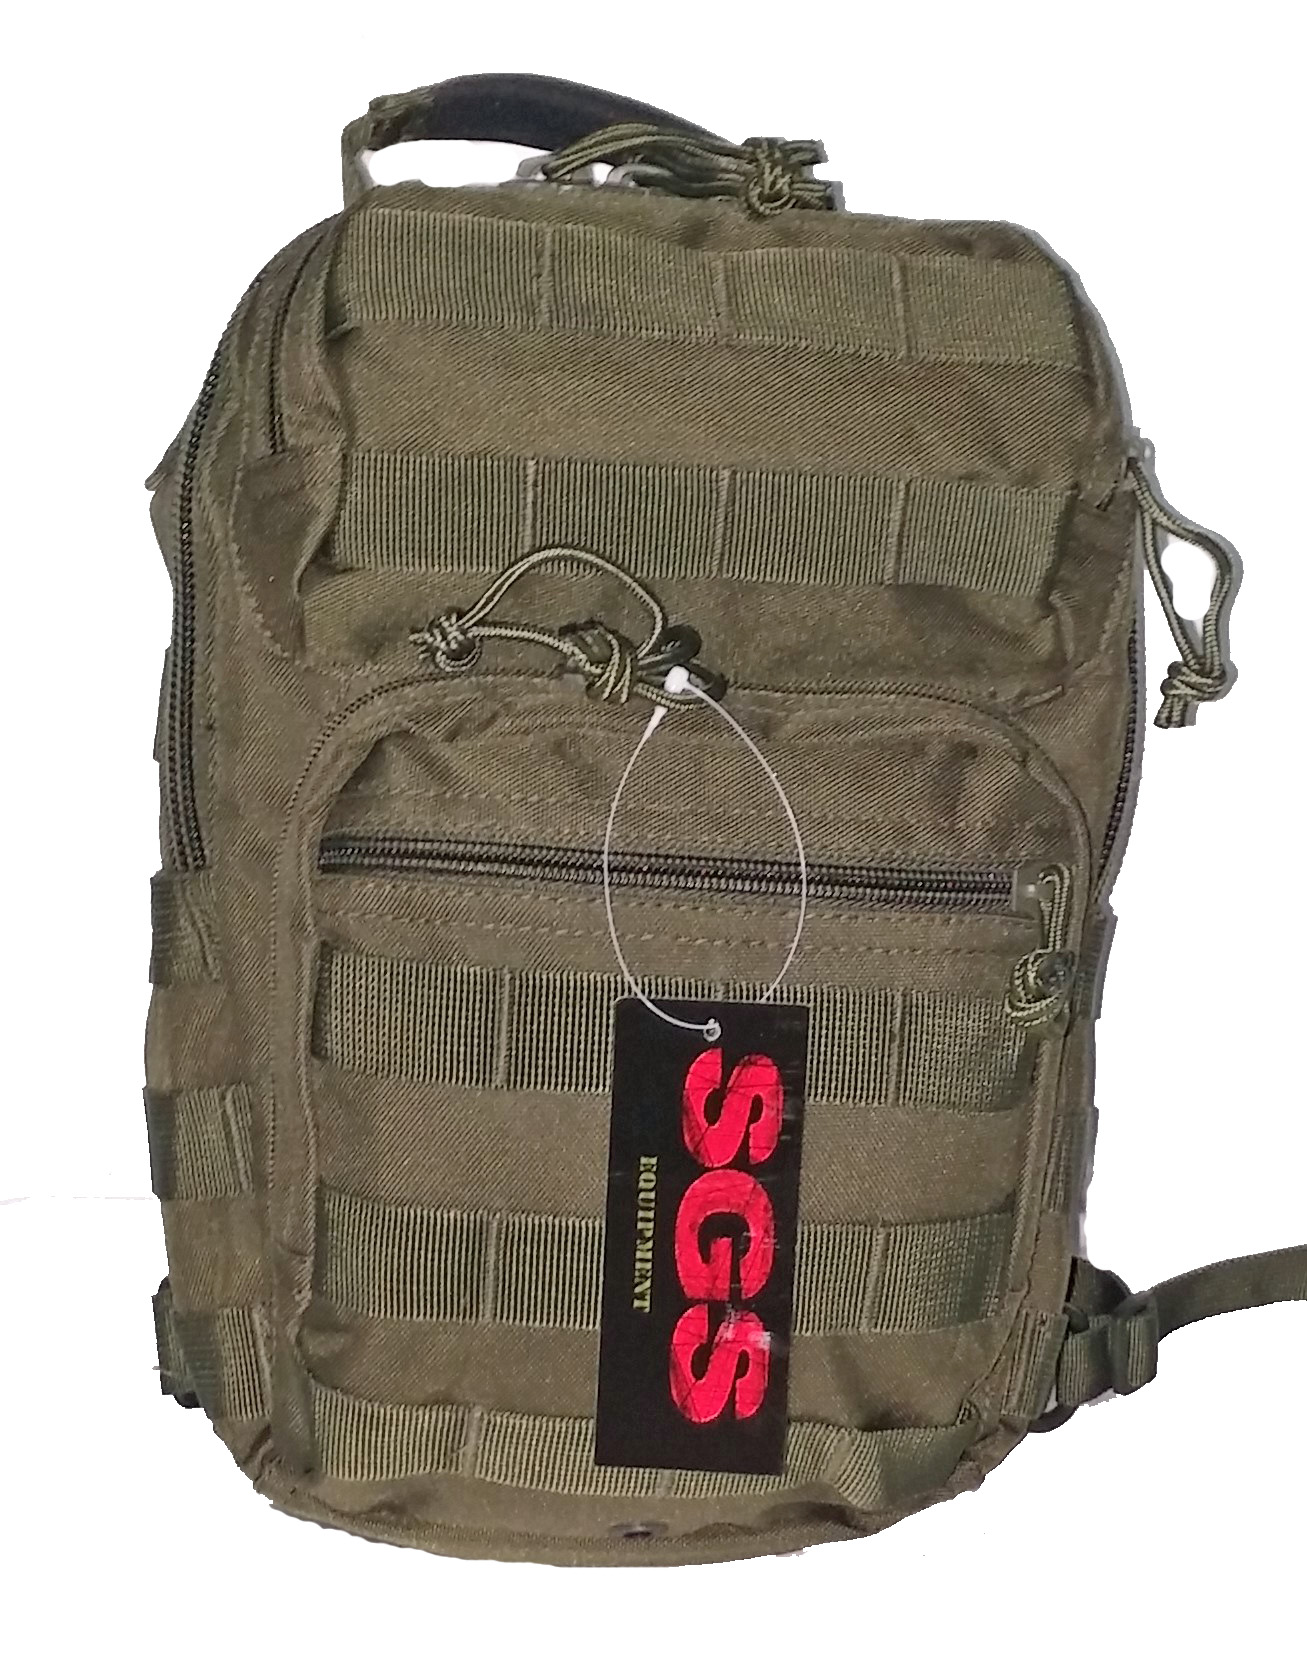 Tactical assault pack small size-Olive Drab